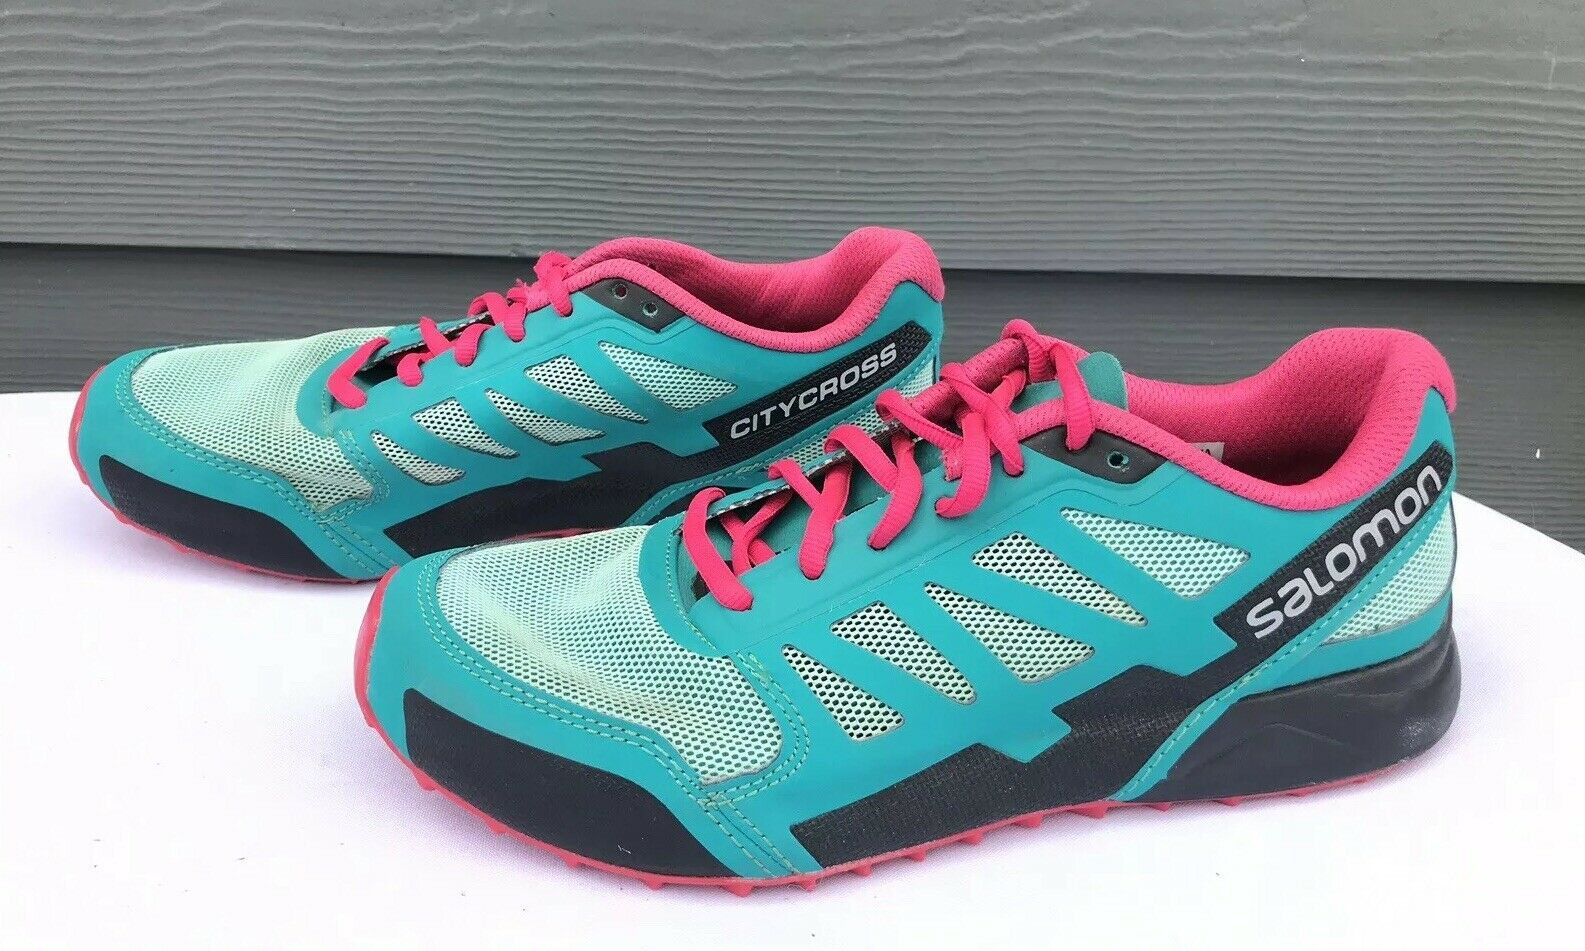 Salomon City Cross Aero Women's Trail Running shoes Size US 6